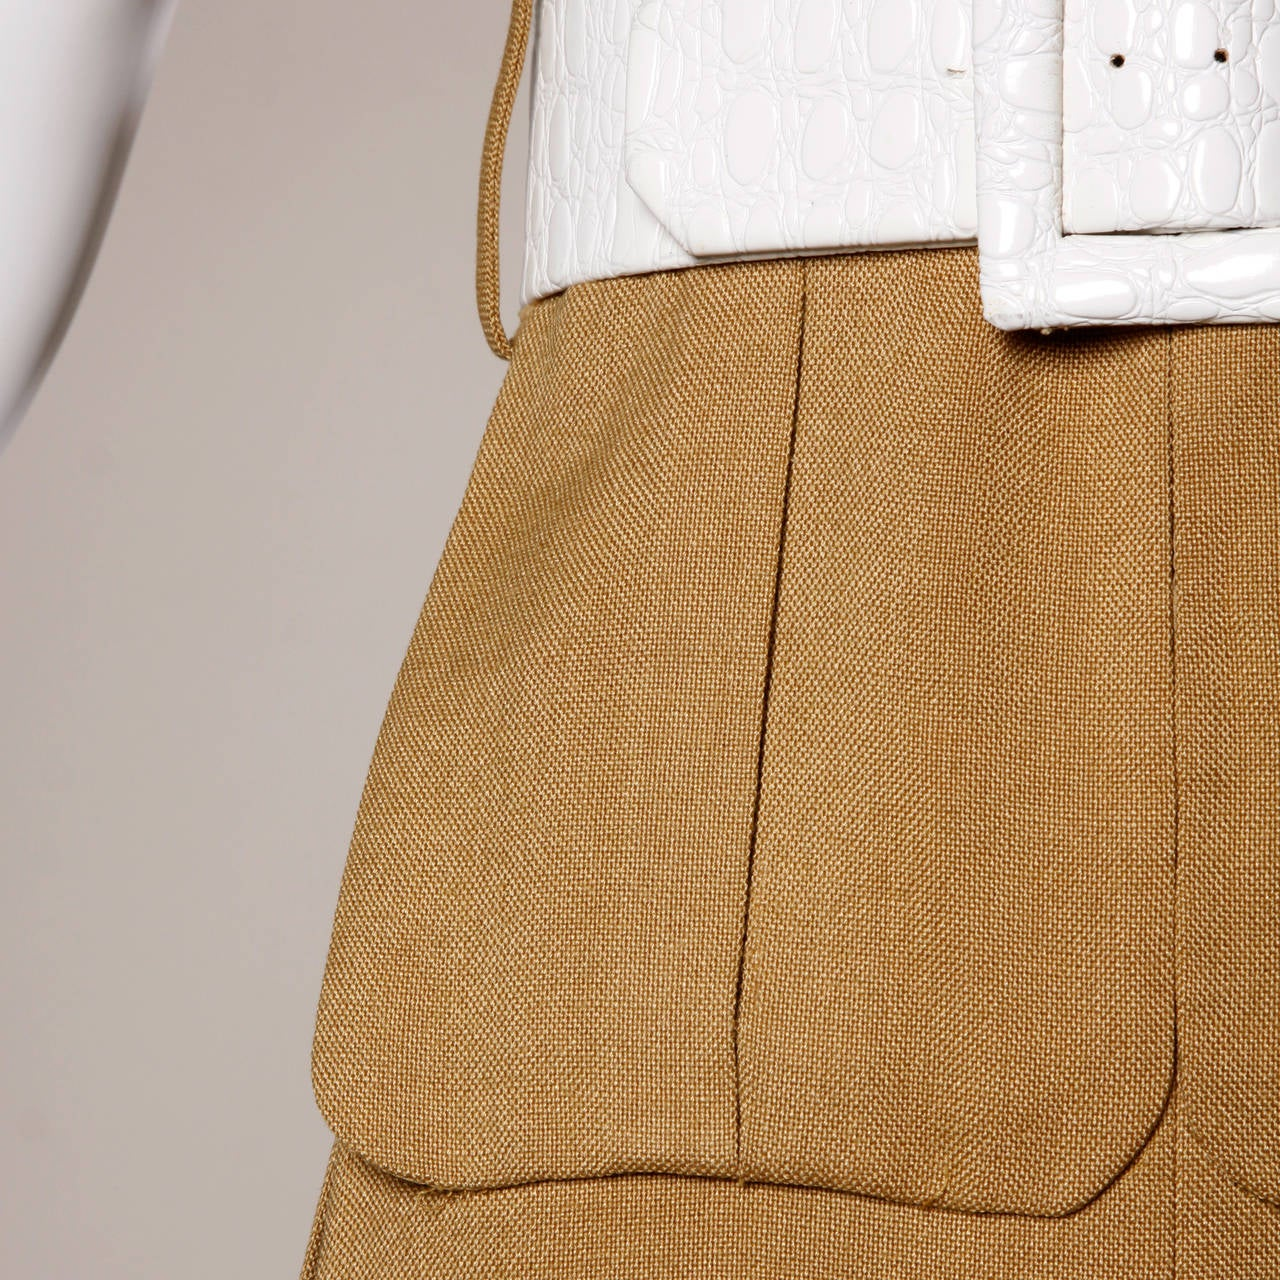 Gorgeous vintage camel linen mod dress with a white leather belt and oversized white mod back buttons. Unique front pouch pockets. Couture construction with hand stitched detailing throughout. By Donald Brooks.  Details:  Fully Lined in